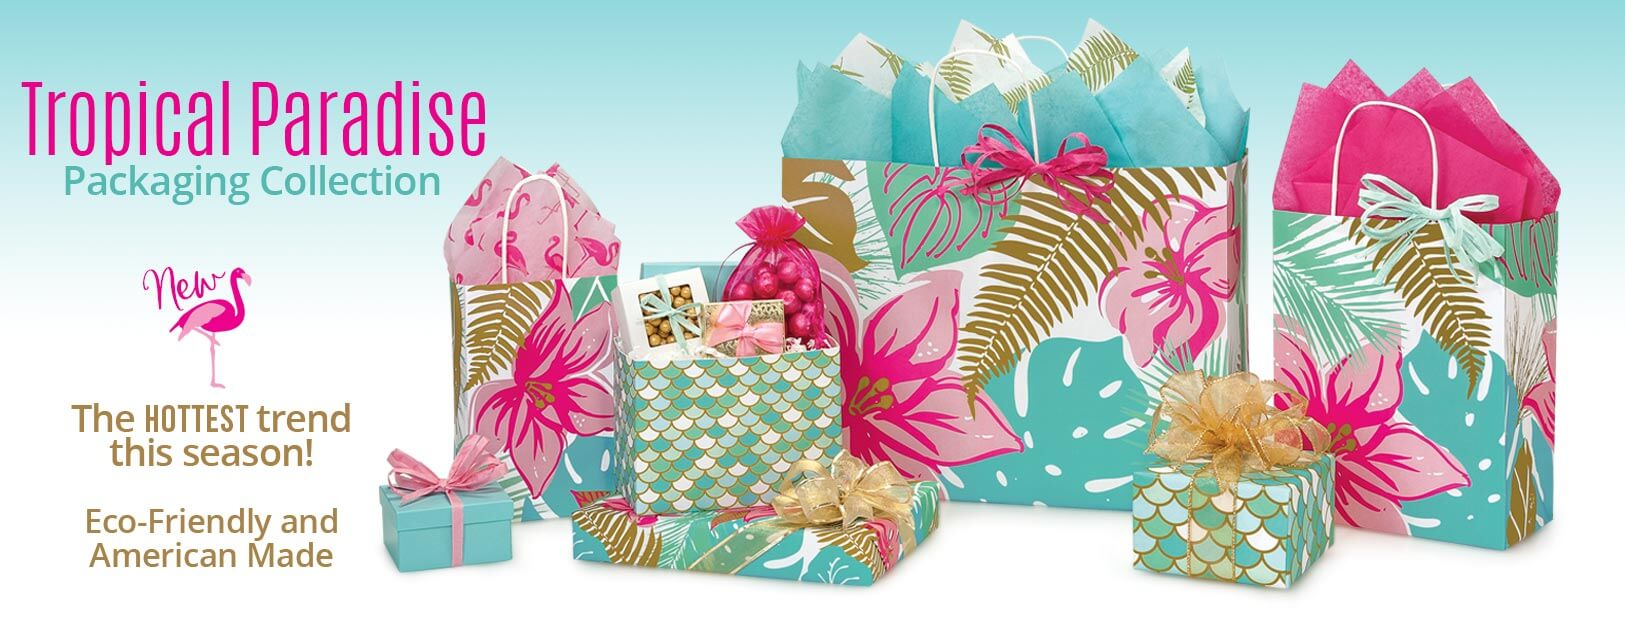 Tropical Paradise Paper Shopping Bags